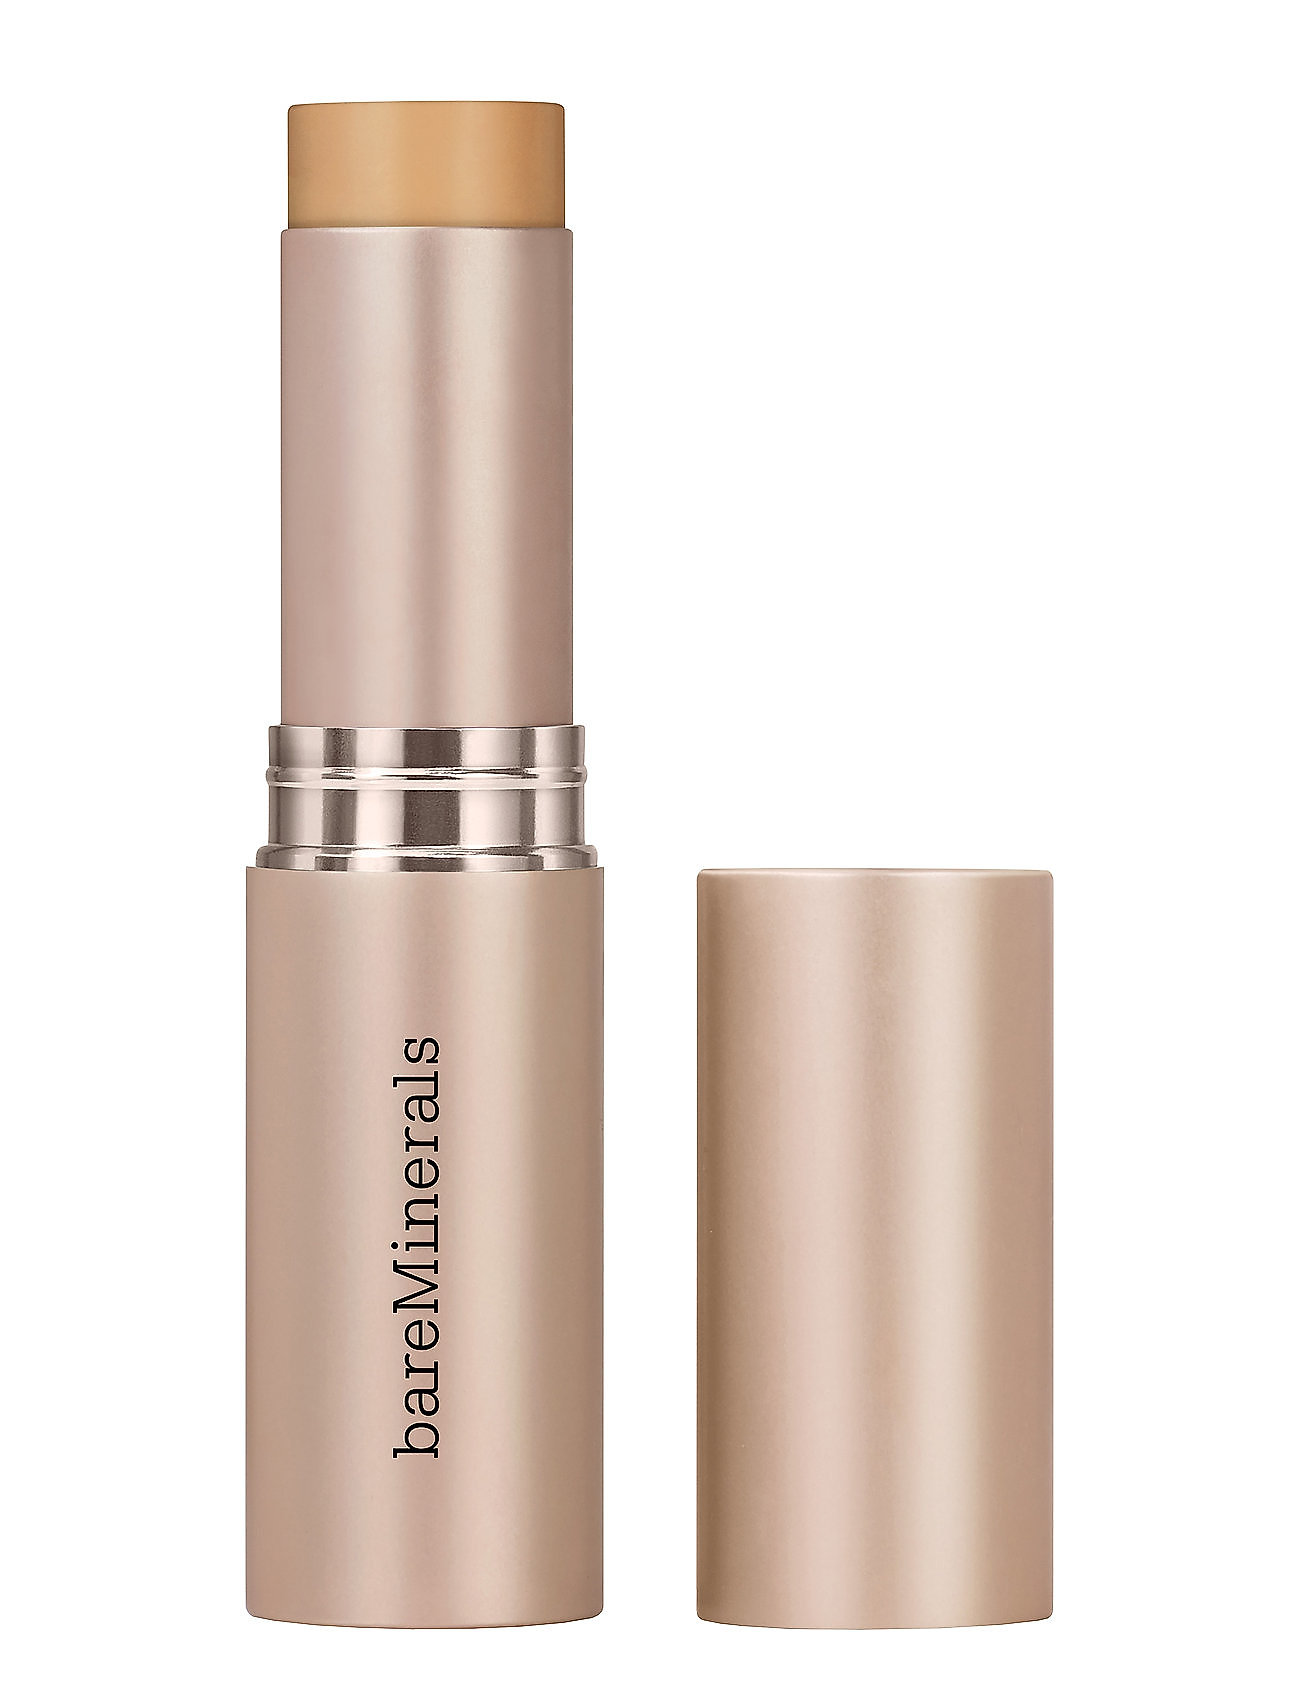 Image of Complexion Rescue Hydrating Foundation Stick Spf 25 Foundation Makeup BareMinerals (3250586901)